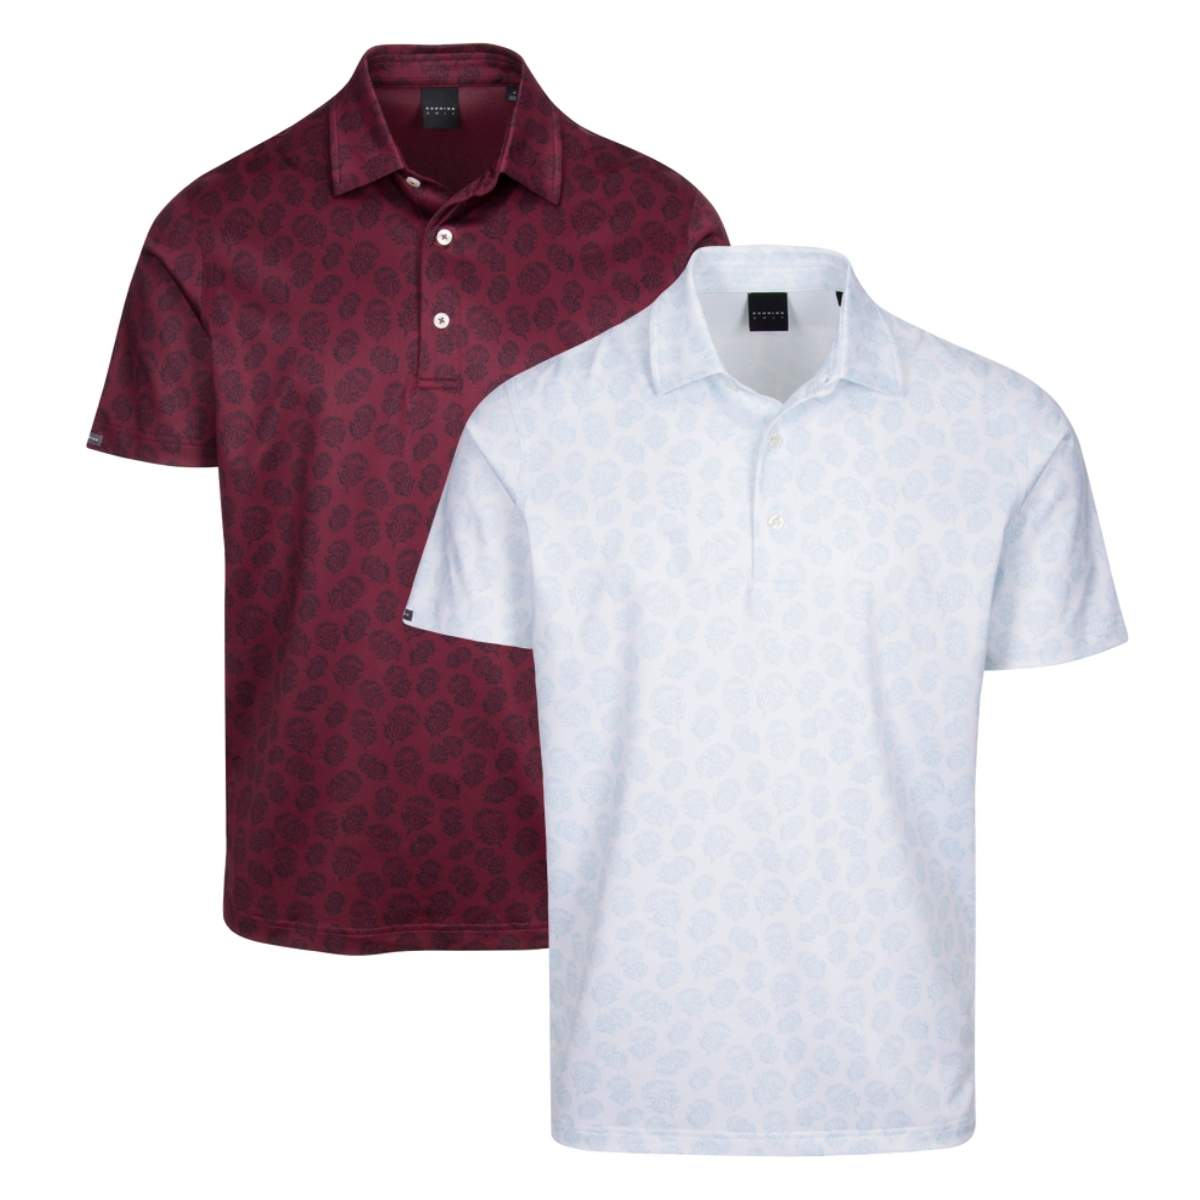 Dunning Lisby Jersey Golf Polo